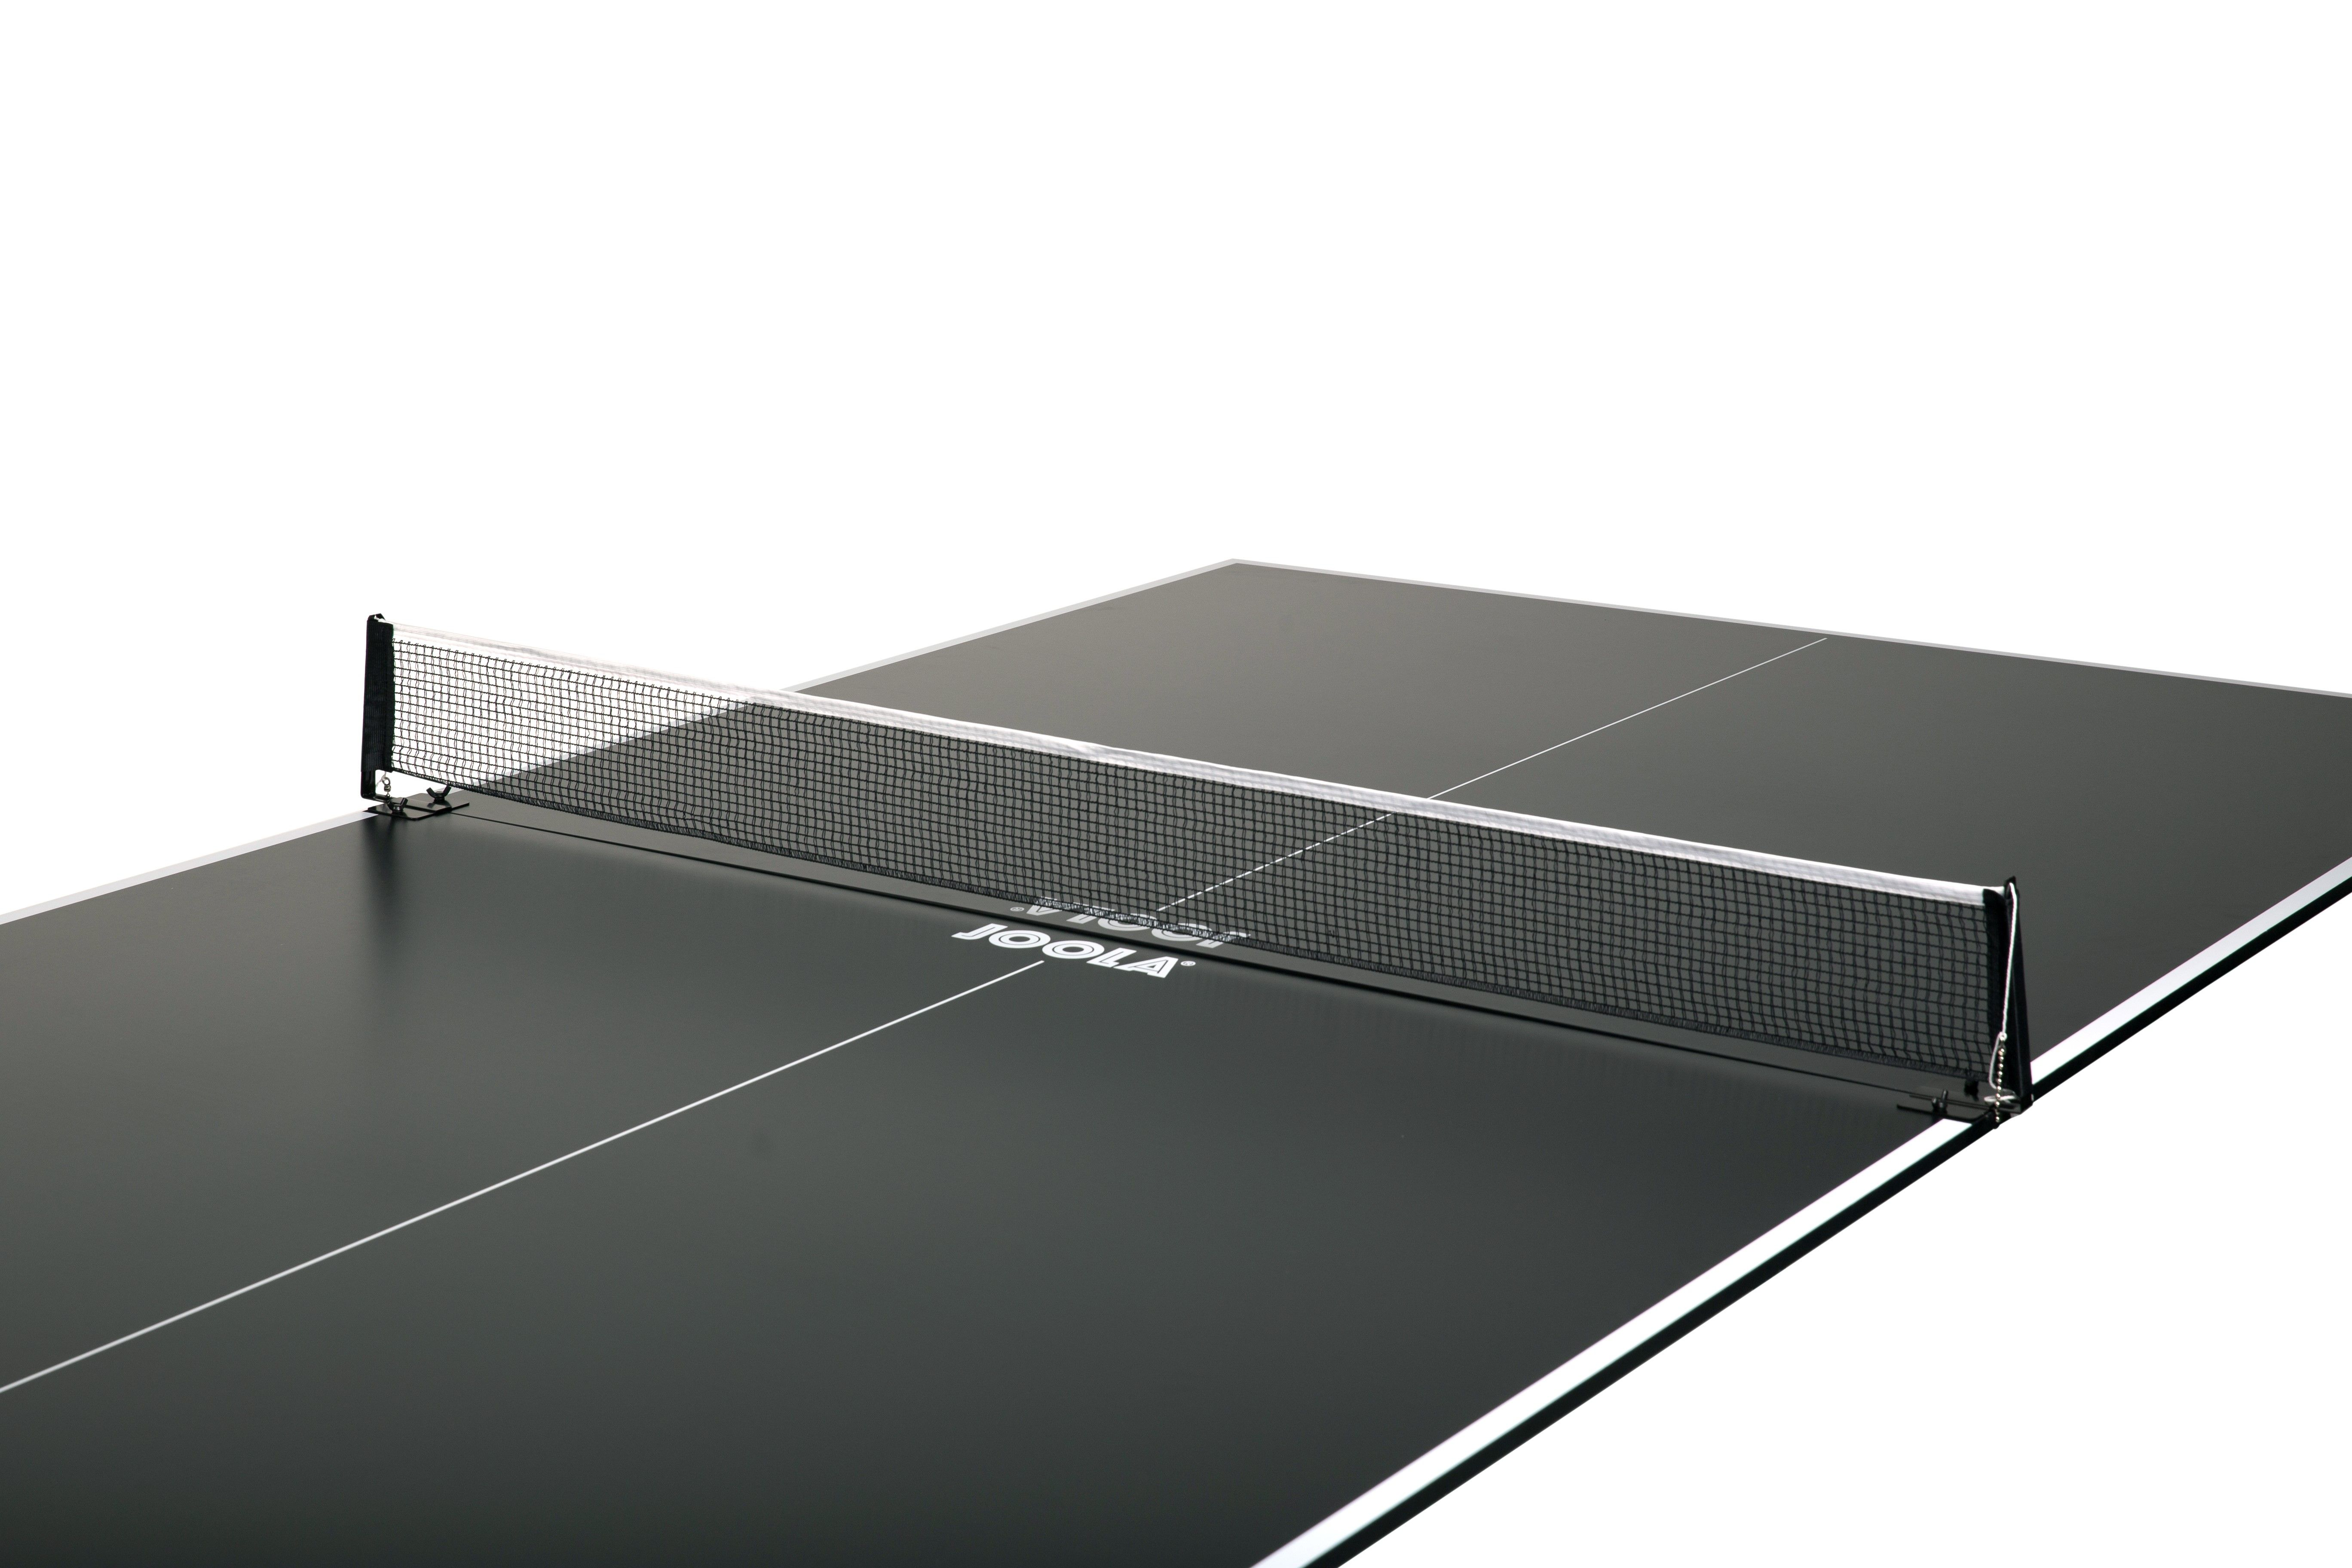 Joola Conversion Table Tennis Top With Foam Backing And Net Set Table Tennis Conversion Top Table Tennis Ping Pong Table Top